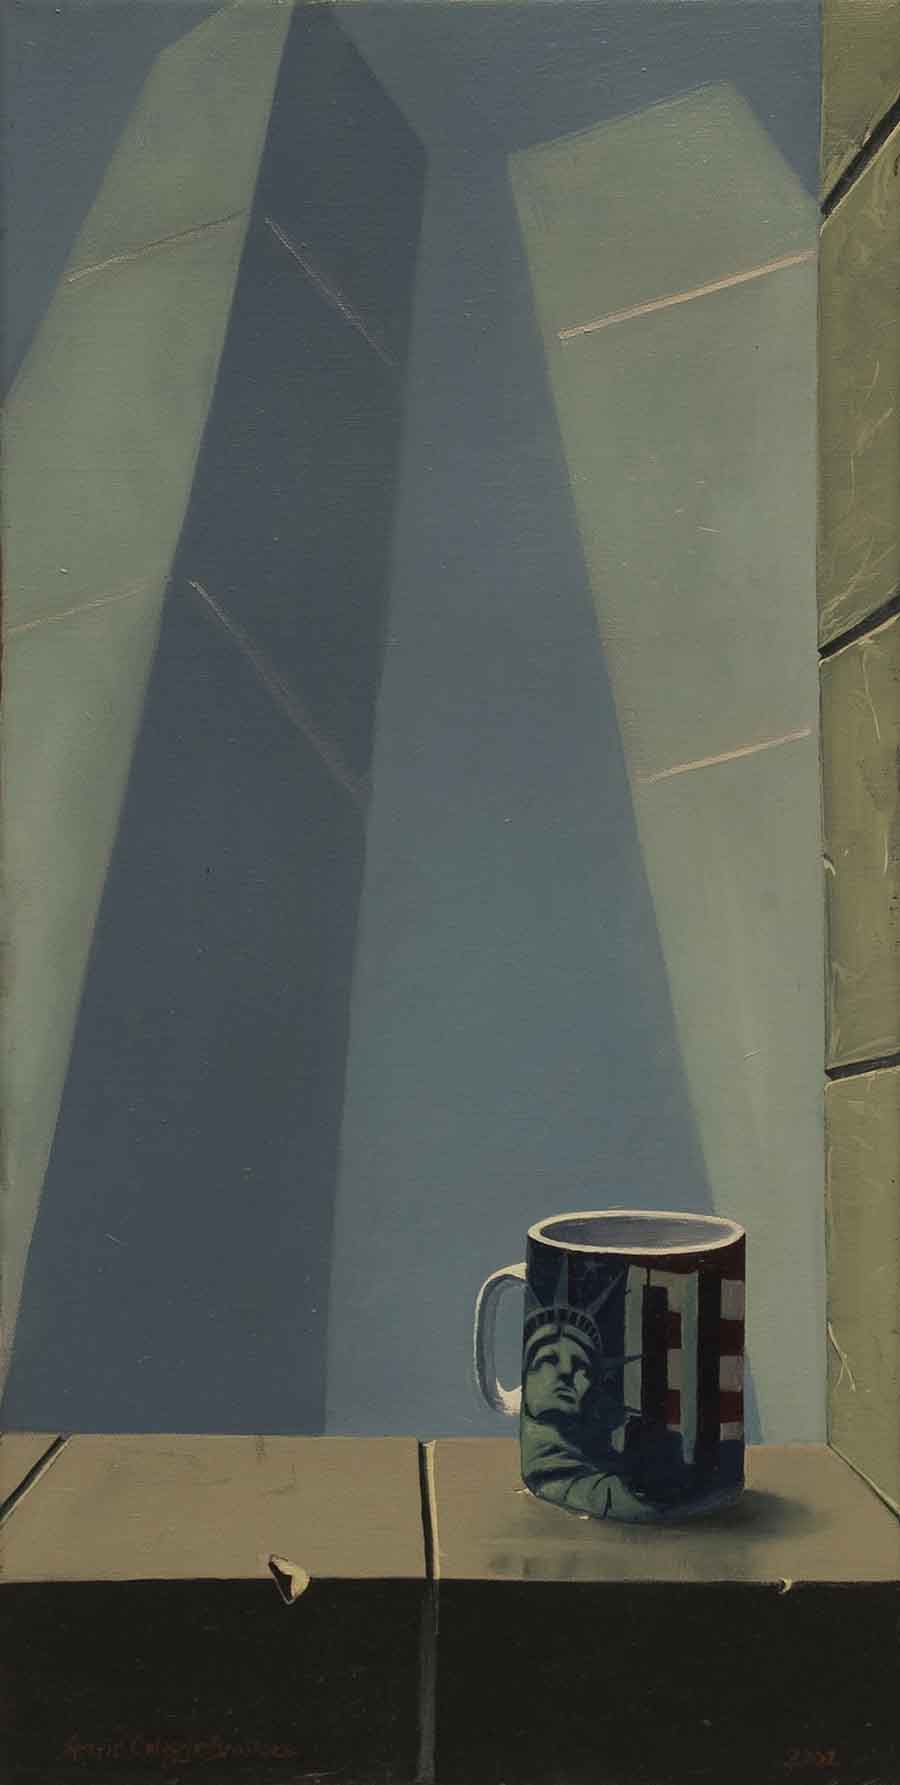 Twin Towers - Oil Painting by Gavin Cologne-Brookes